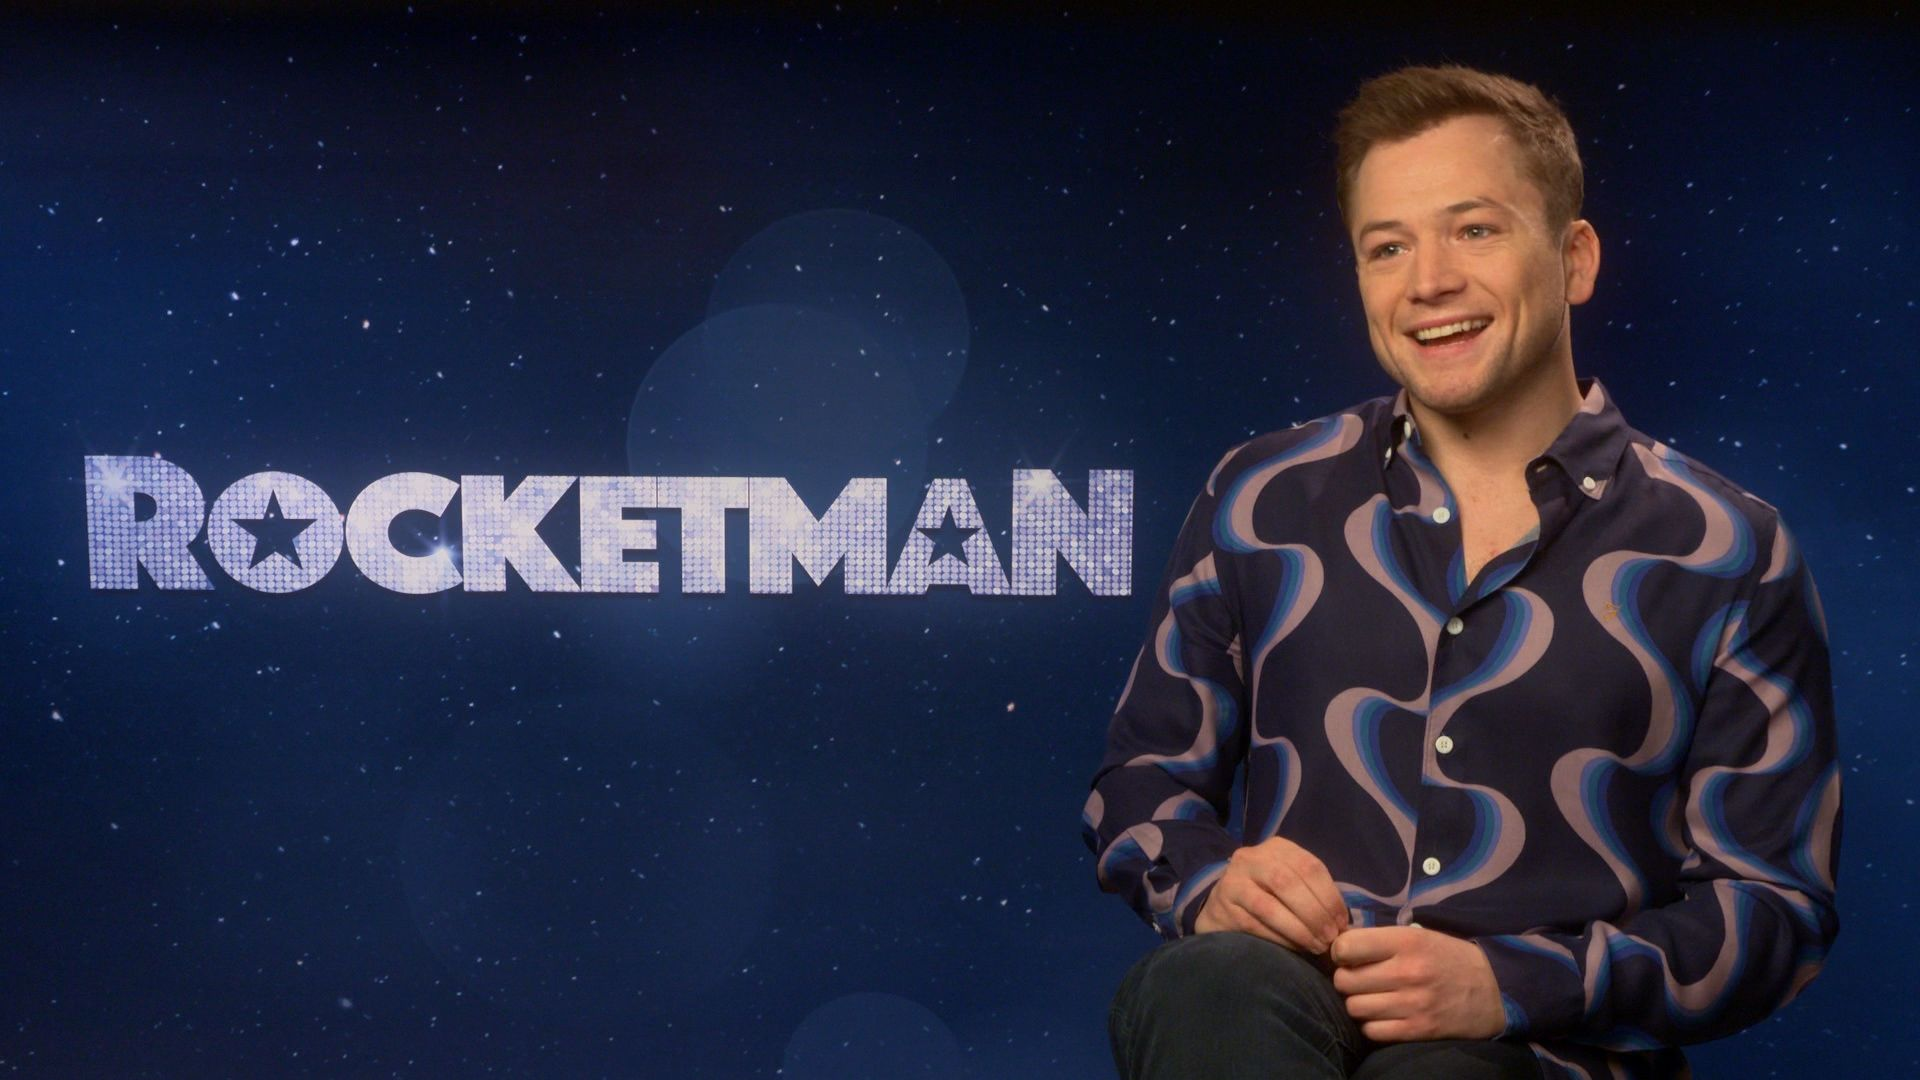 rocketman taron egerton on why he wanted to do his own